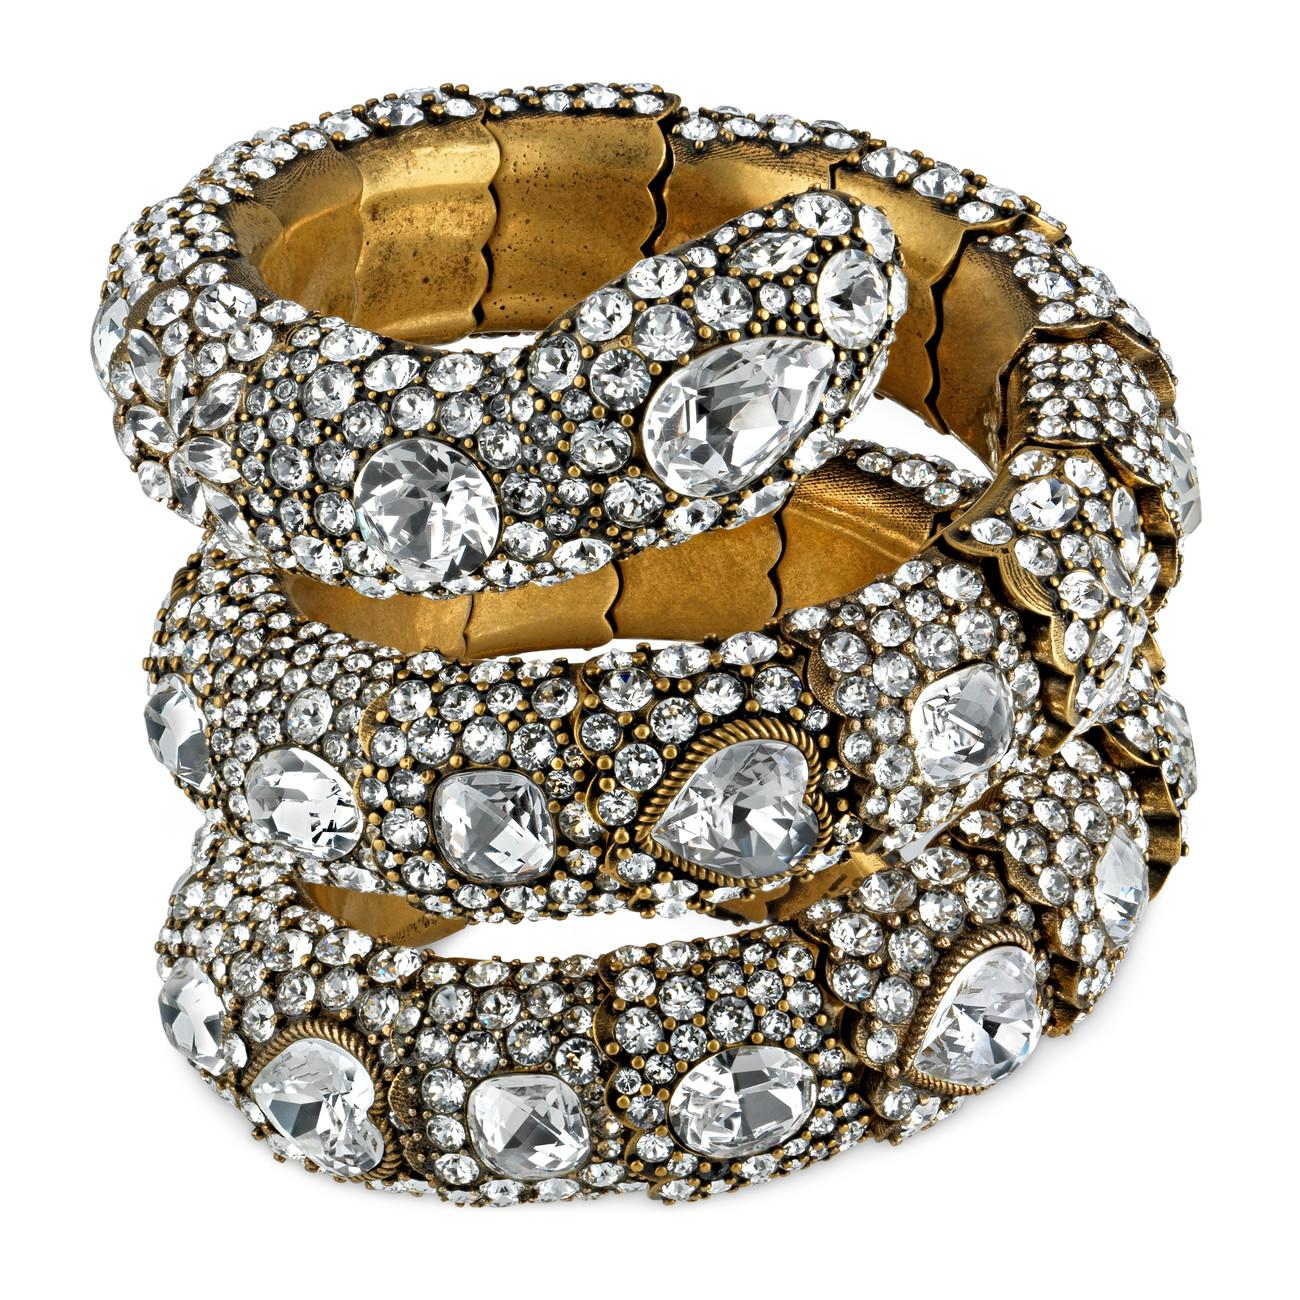 d8498db5e Gucci Triple Wrap Snake Bracelet With Crystals in White - Lyst